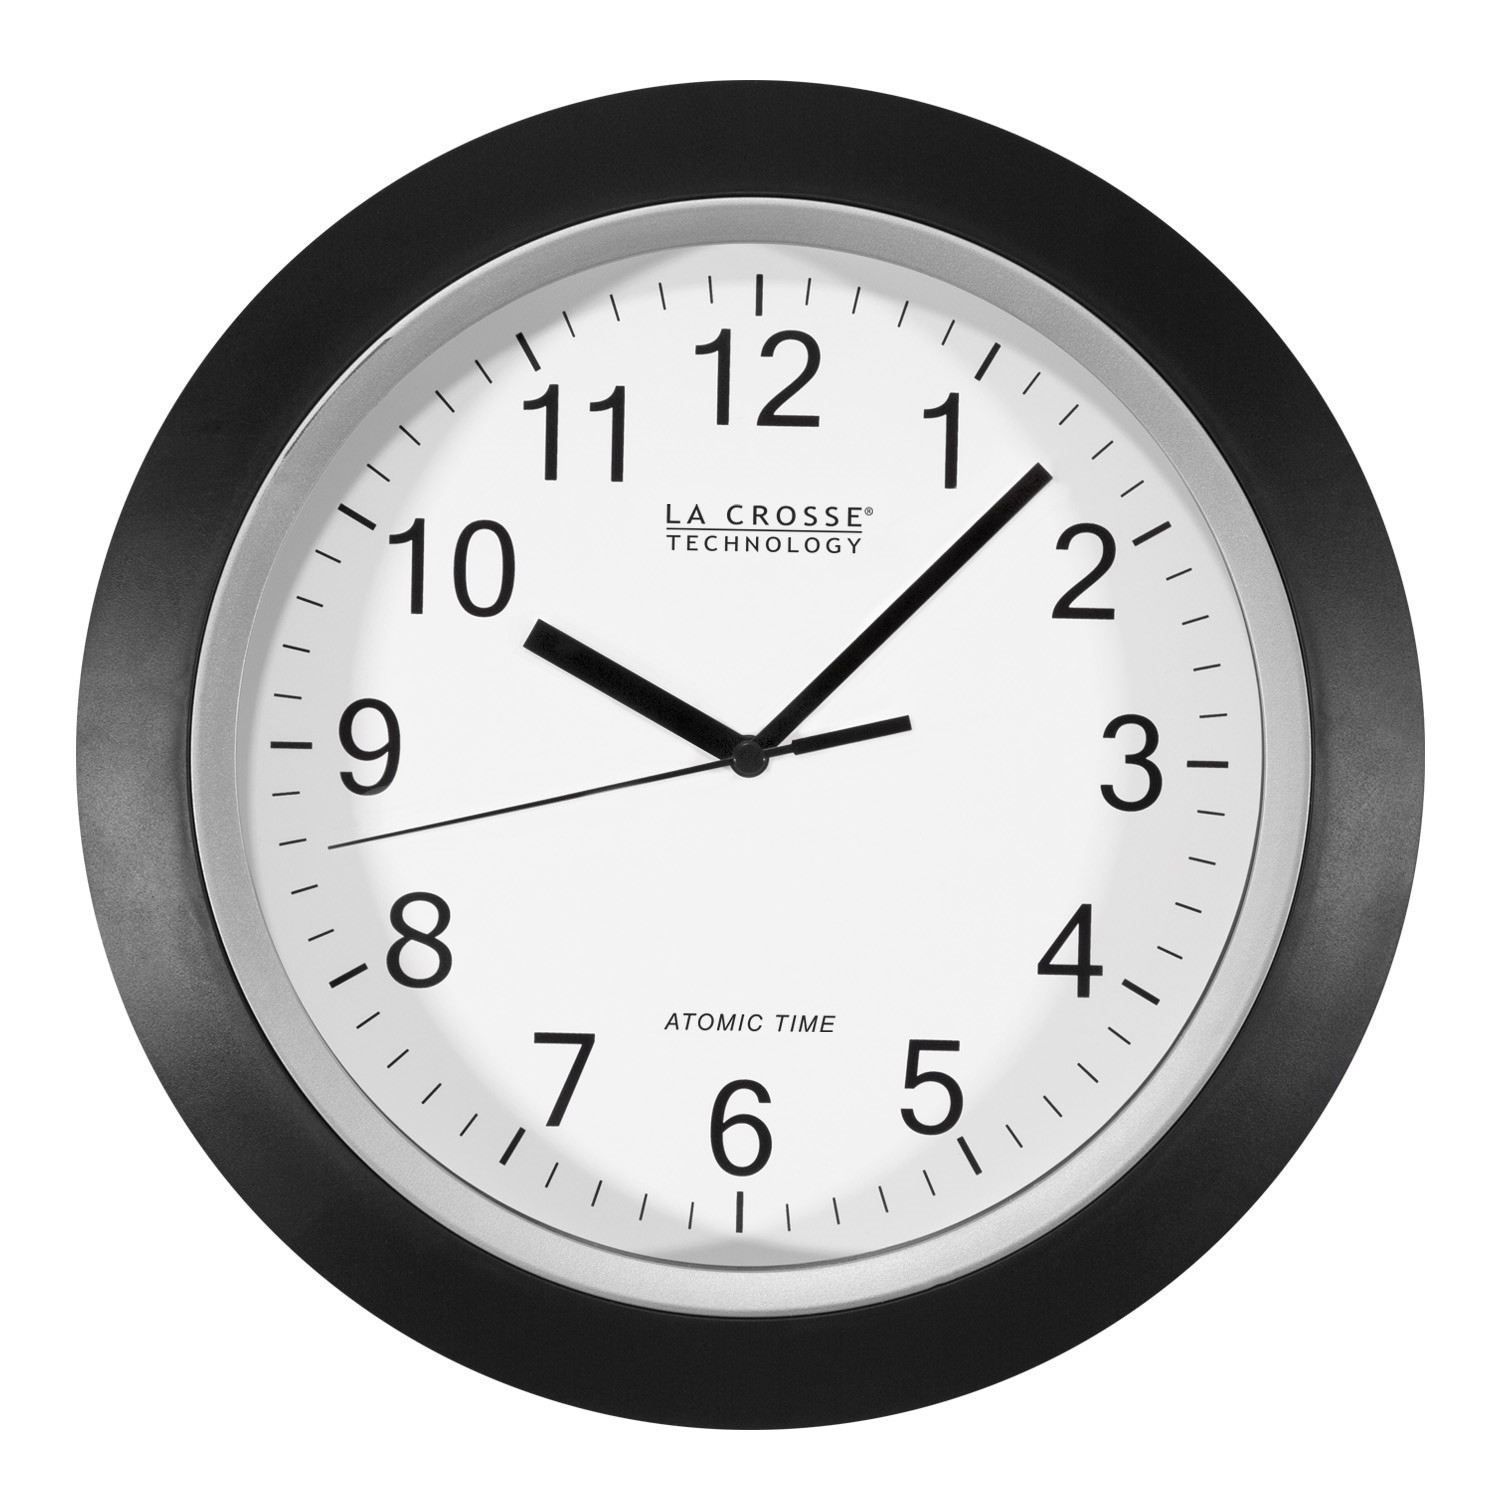 Better Homes and Gardens 12 Inch Analog Atomic Wall Clock by La Crosse Technology Ltd.